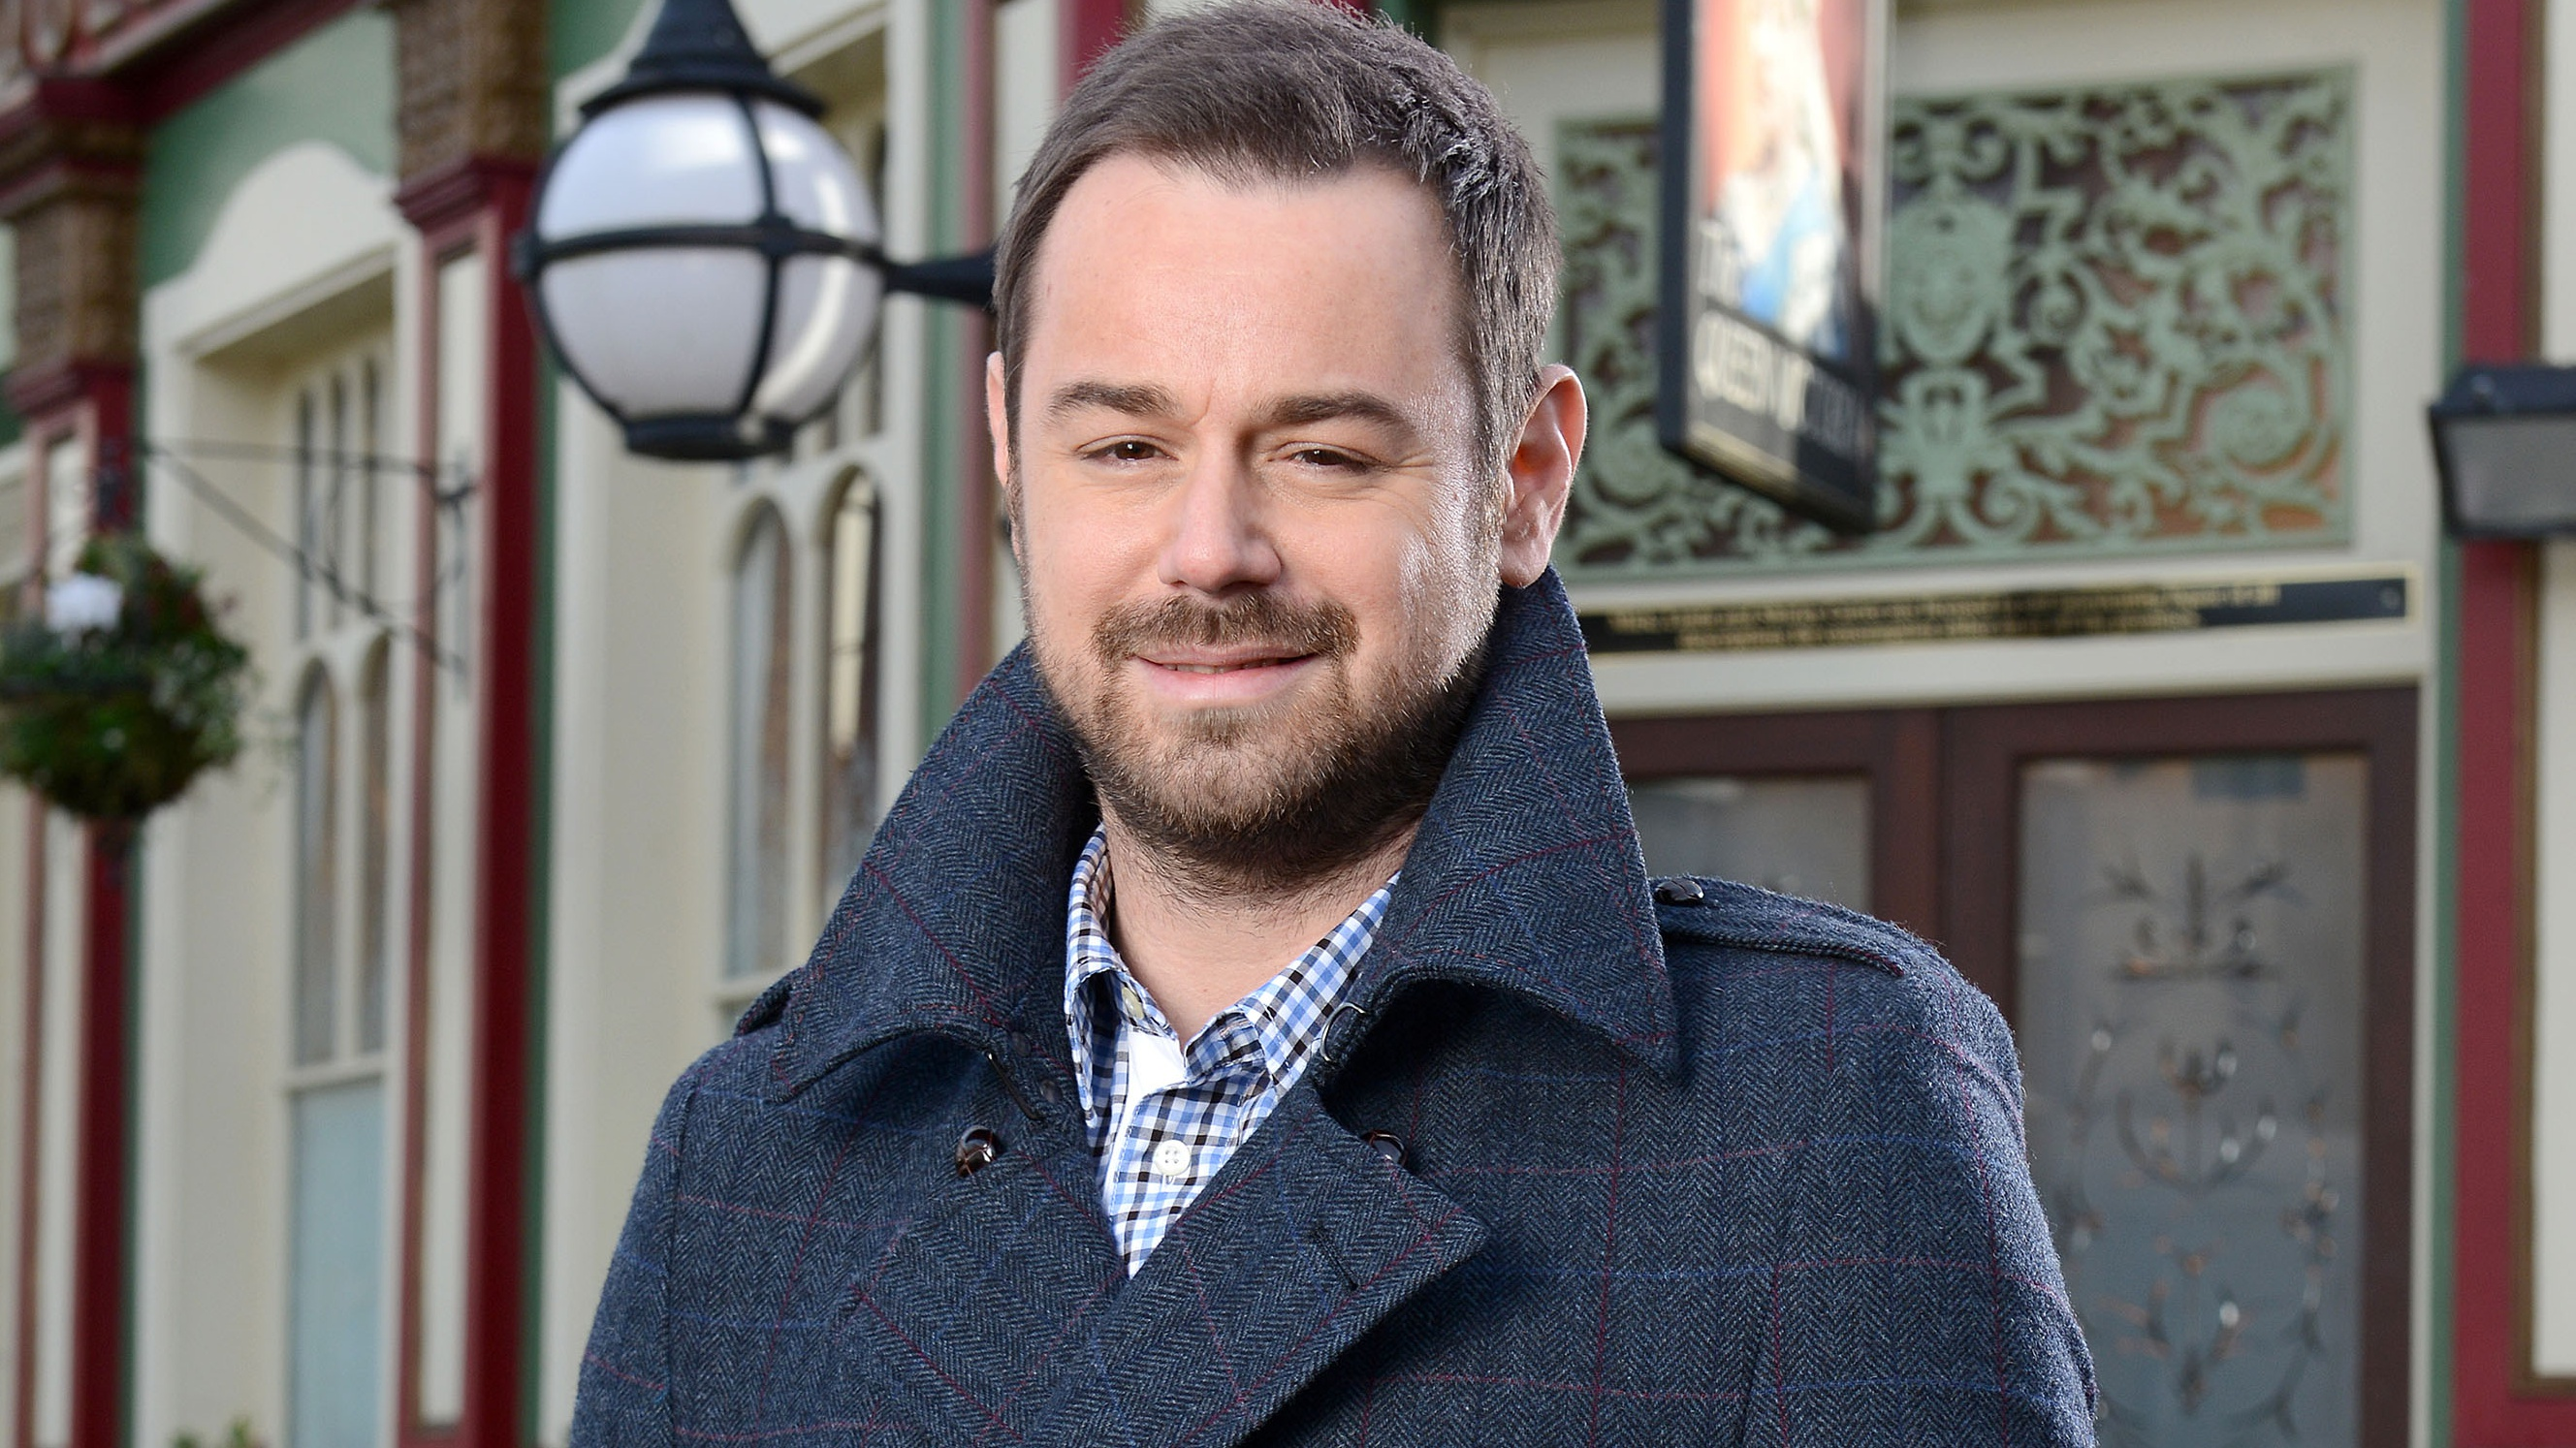 Danny Dyer hints he might be leaving EastEnders